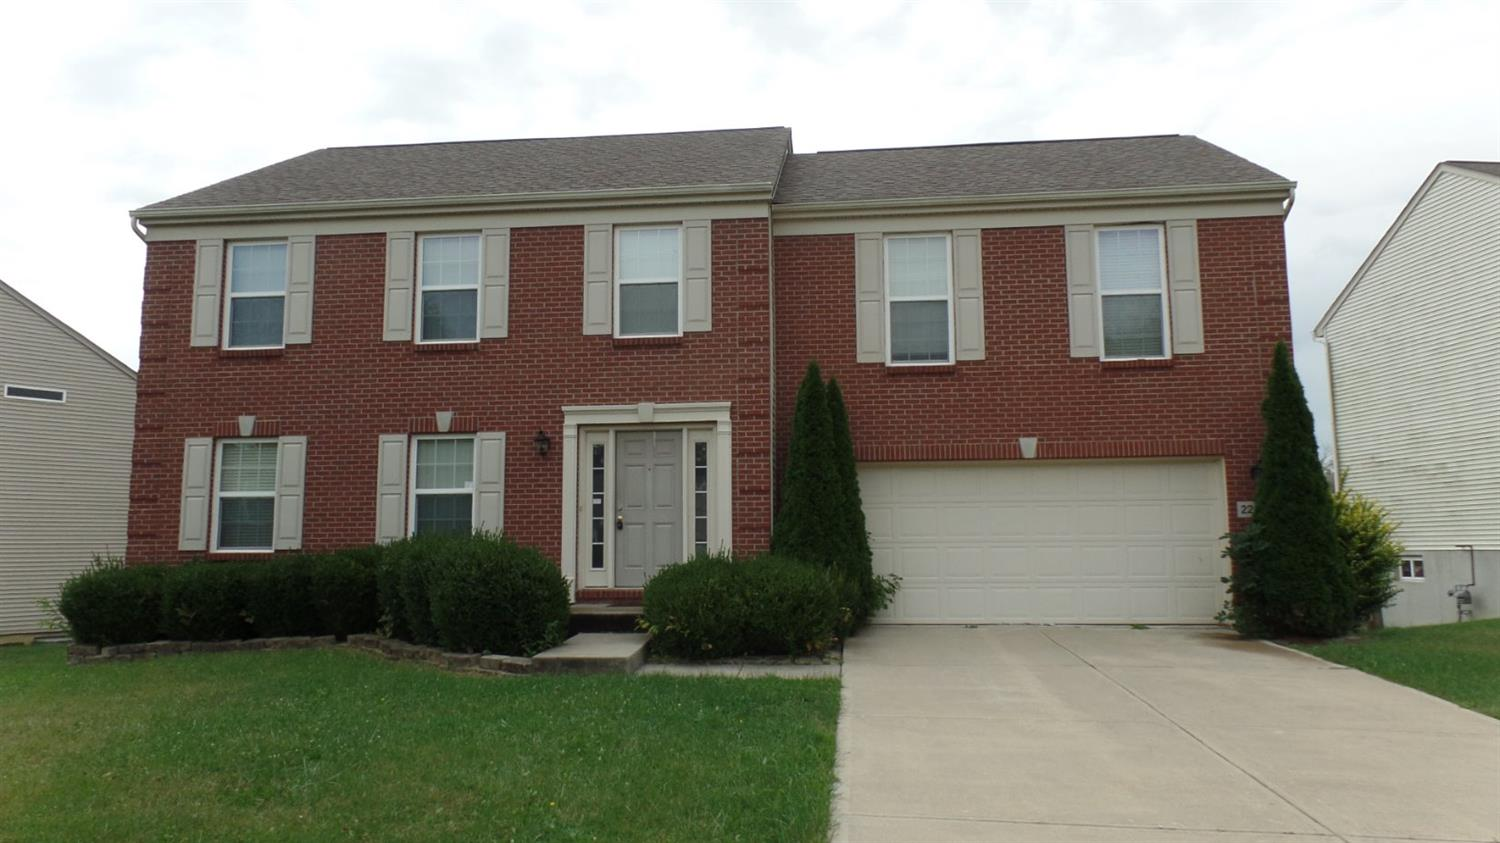 Photo 1 for 2239 Bluegrama Dr Burlington, KY 41005